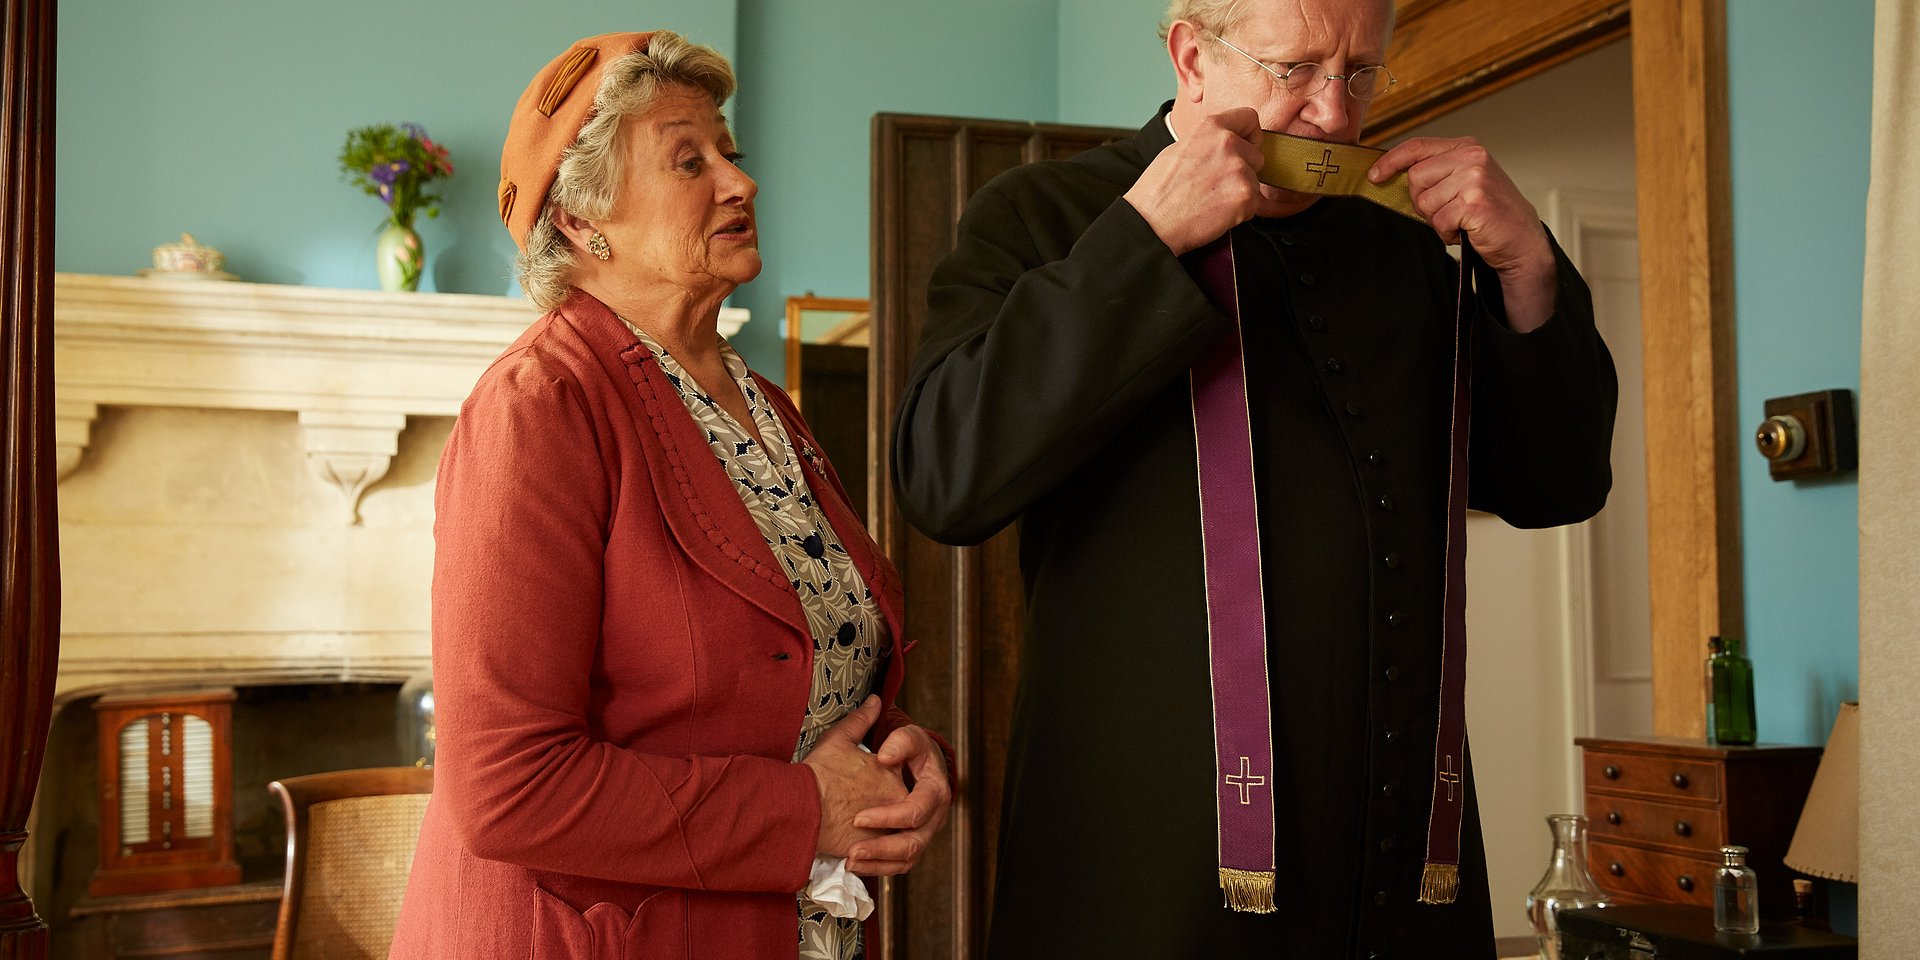 'FATHER BROWN' ESTÁ DE VOLTA AO FOX CRIME COM DUAS NOVAS TEMPORADAS